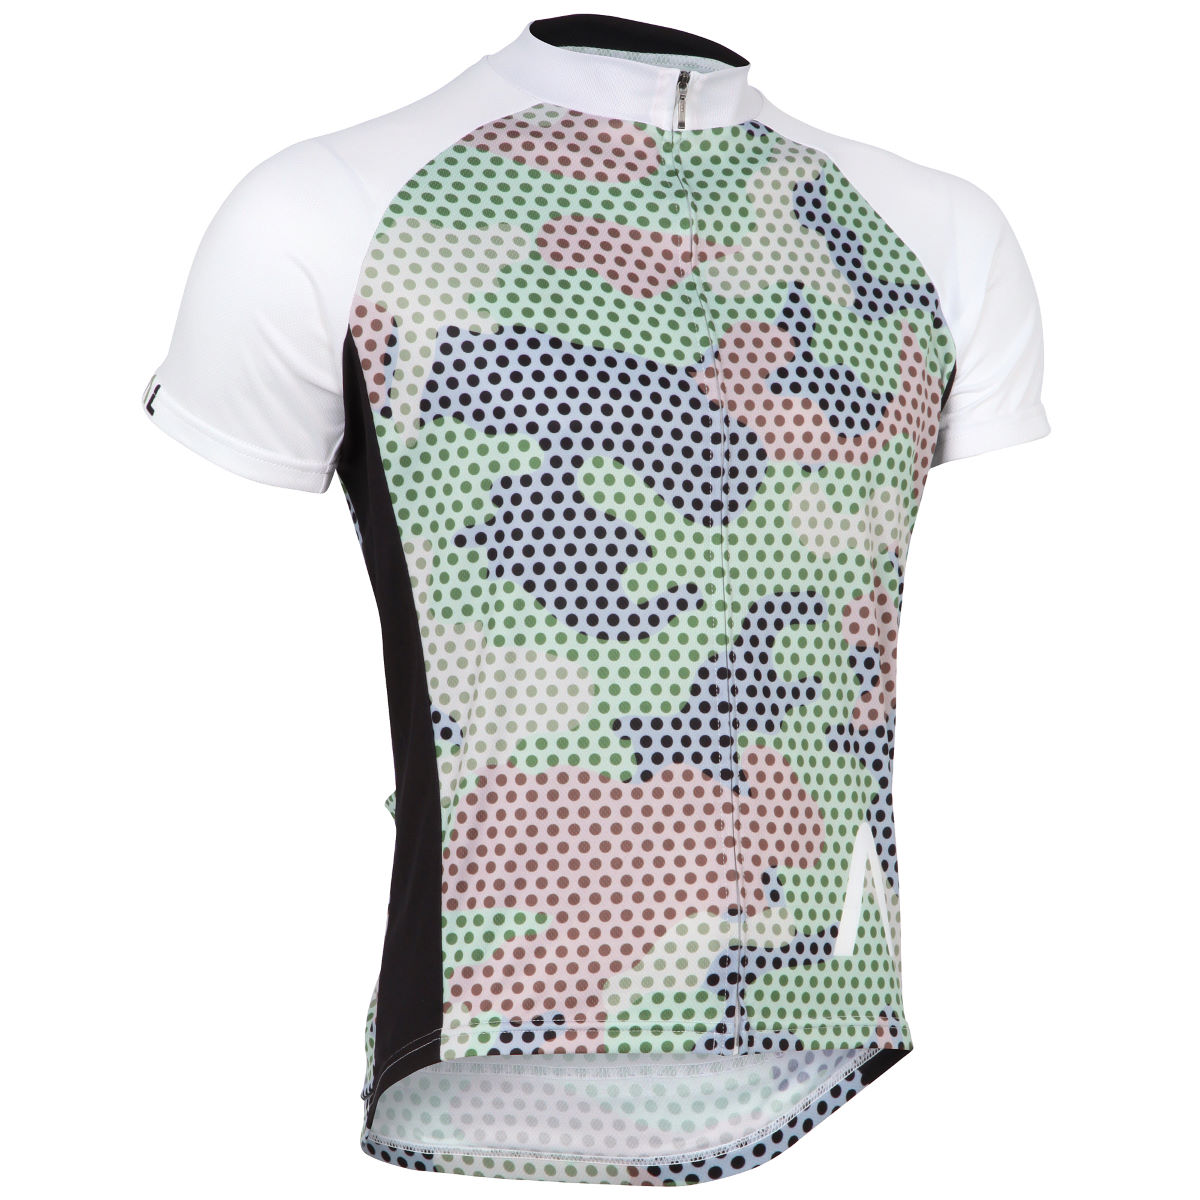 Maillot Primal Meshed Up (manches courtes) - S Vert olive Maillots vélo à manches courtes